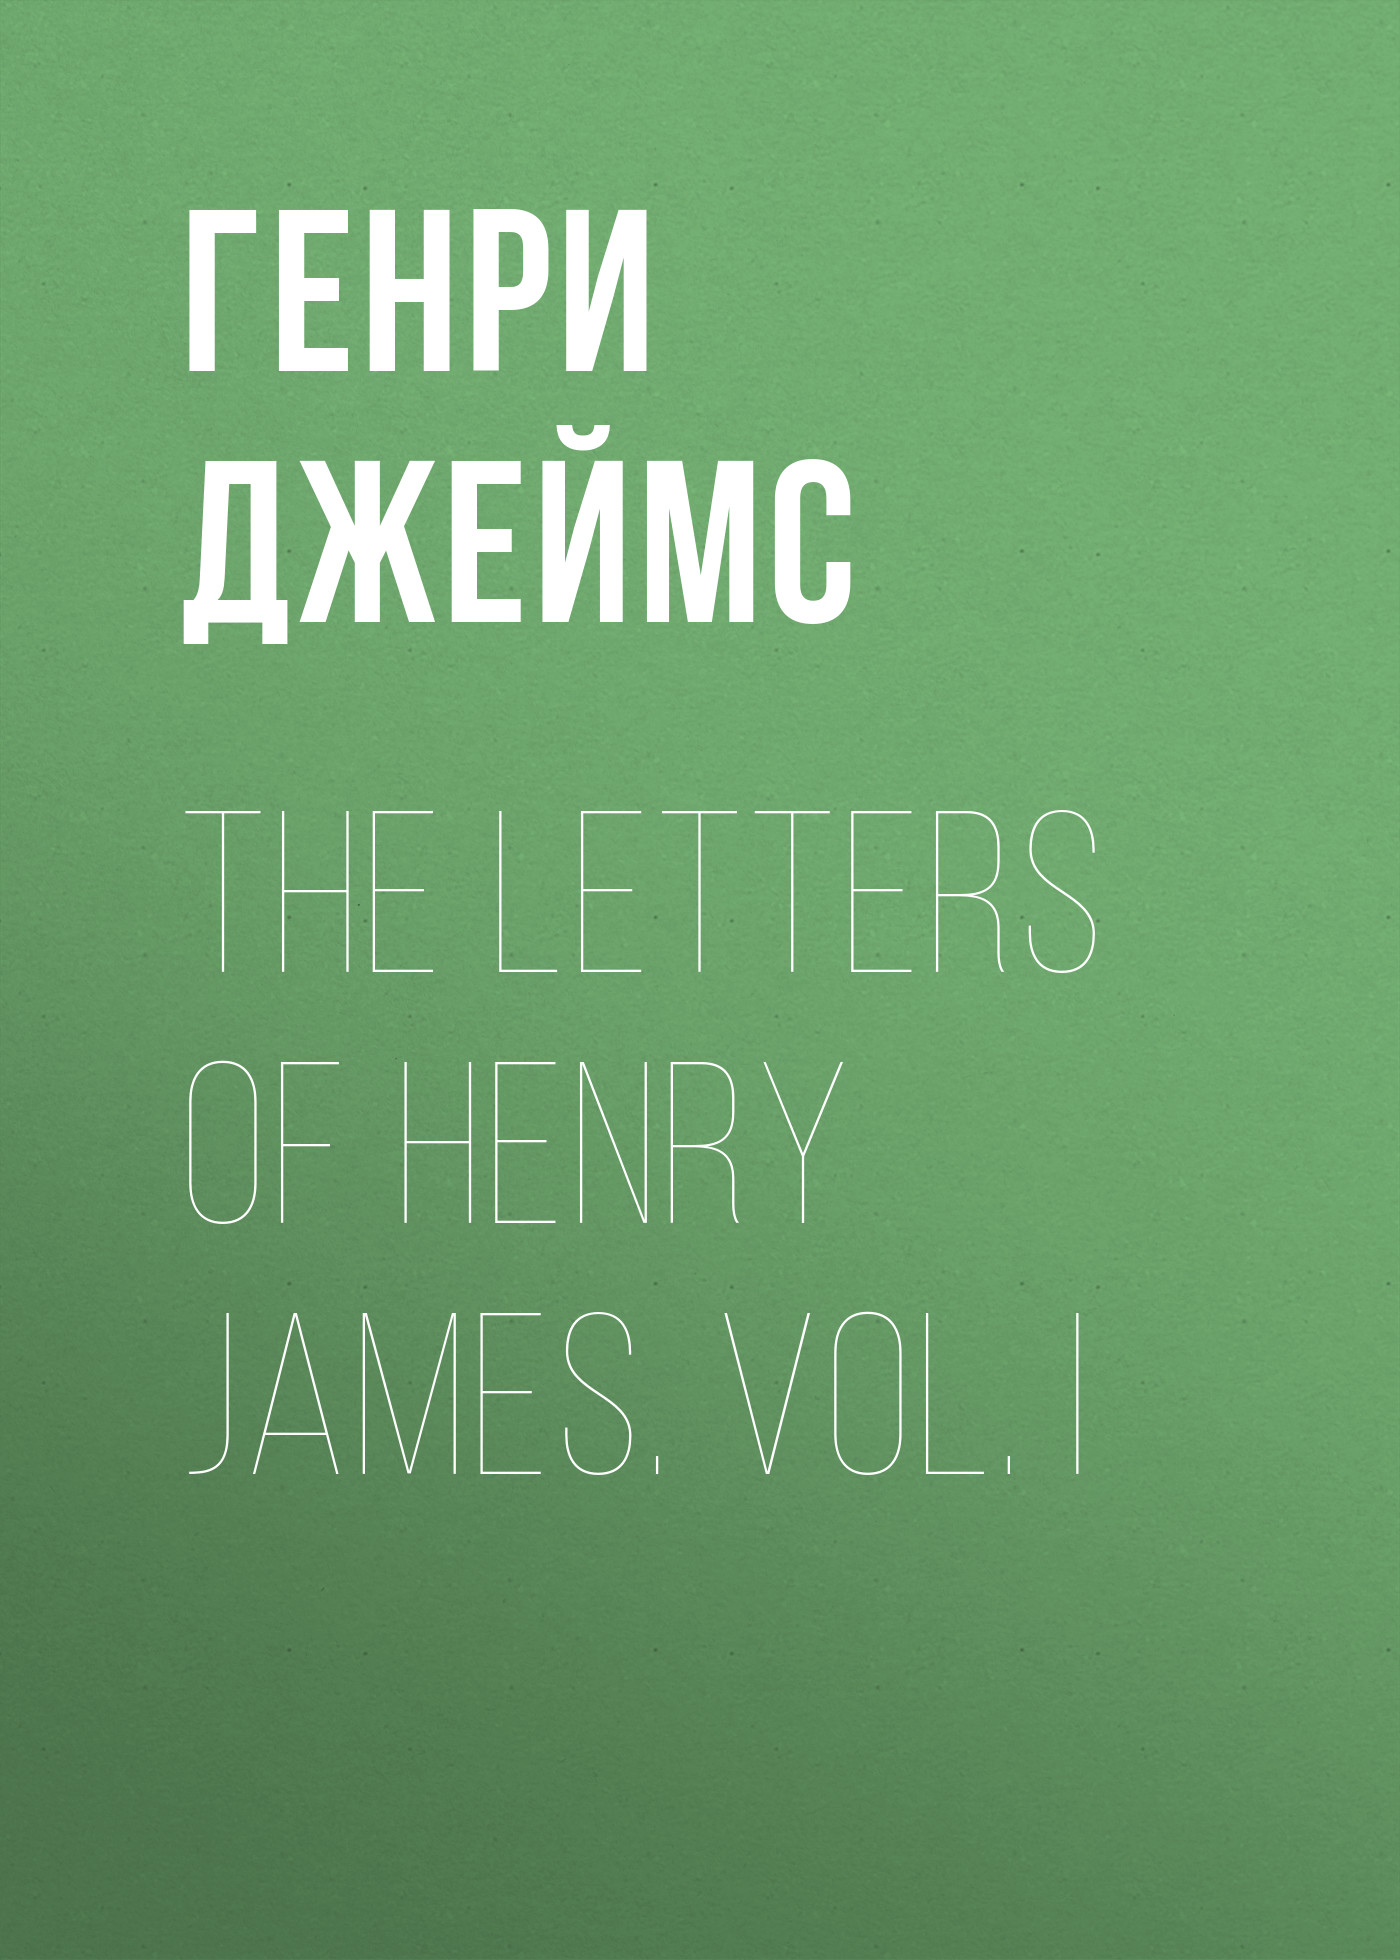 Генри Джеймс The Letters of Henry James. Vol. I цена 2017